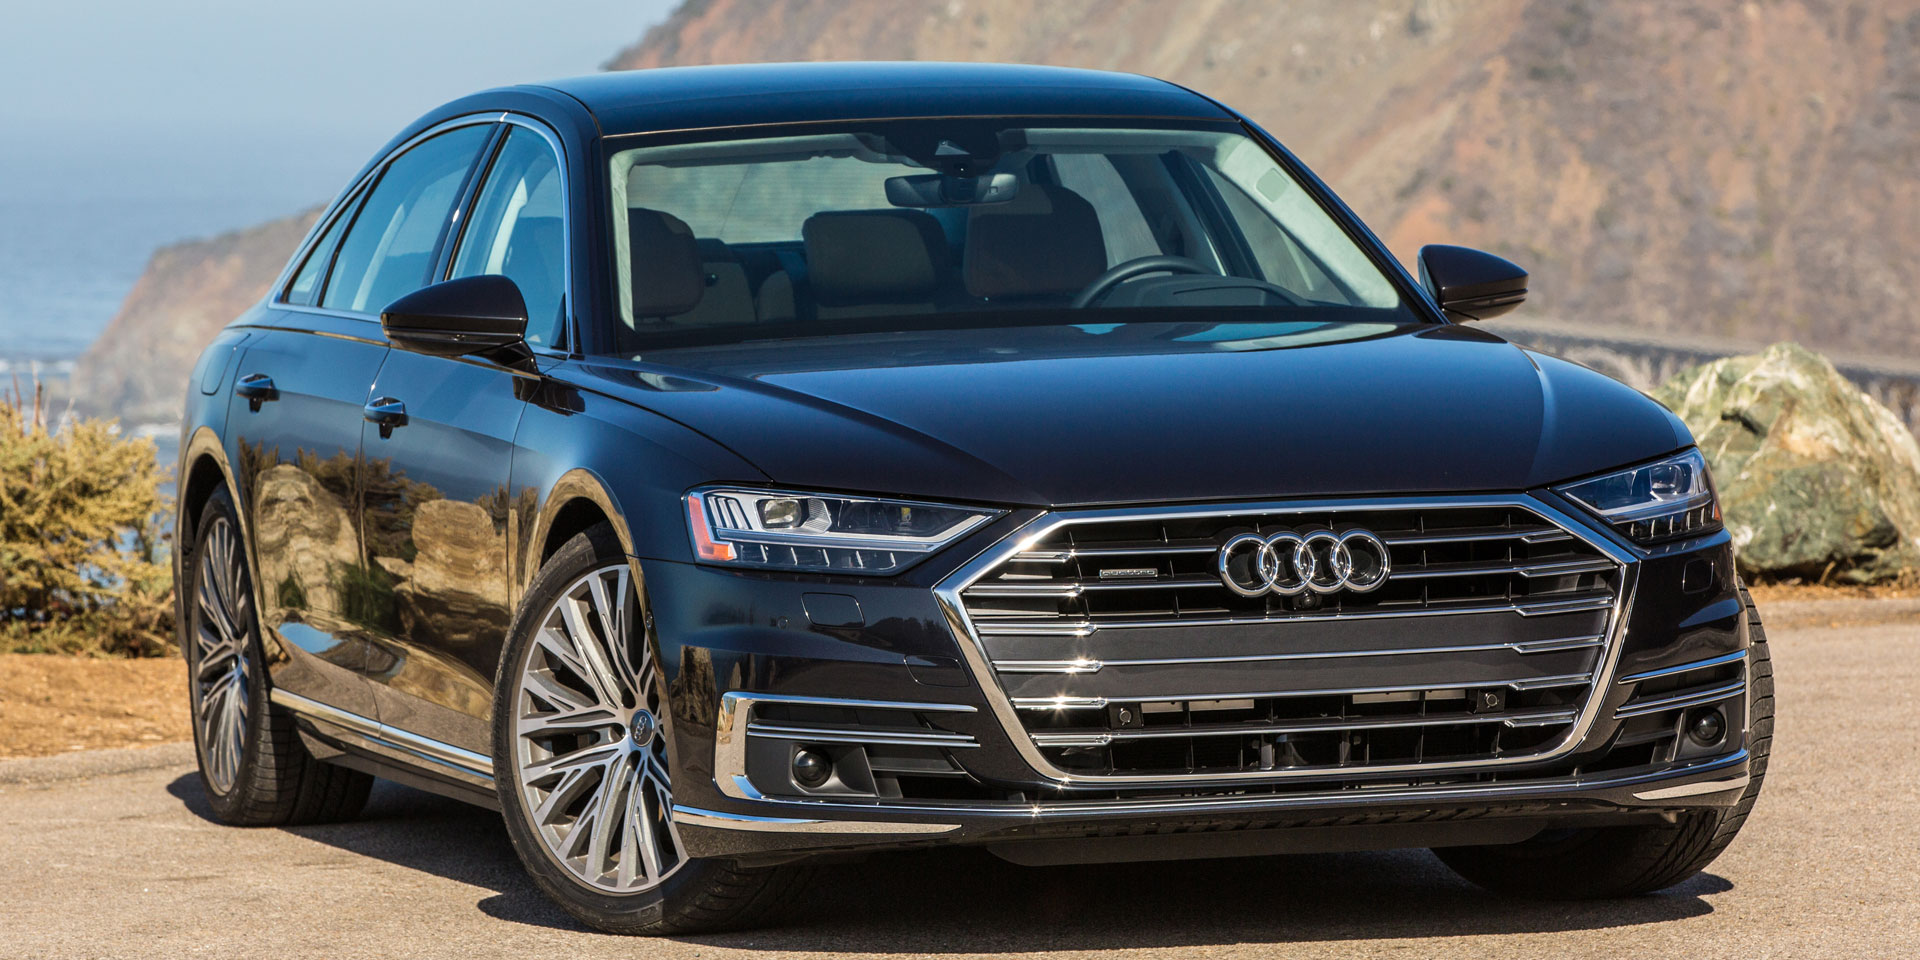 2019 Audi A8 S8 Vehicles On Display Chicago Auto Show